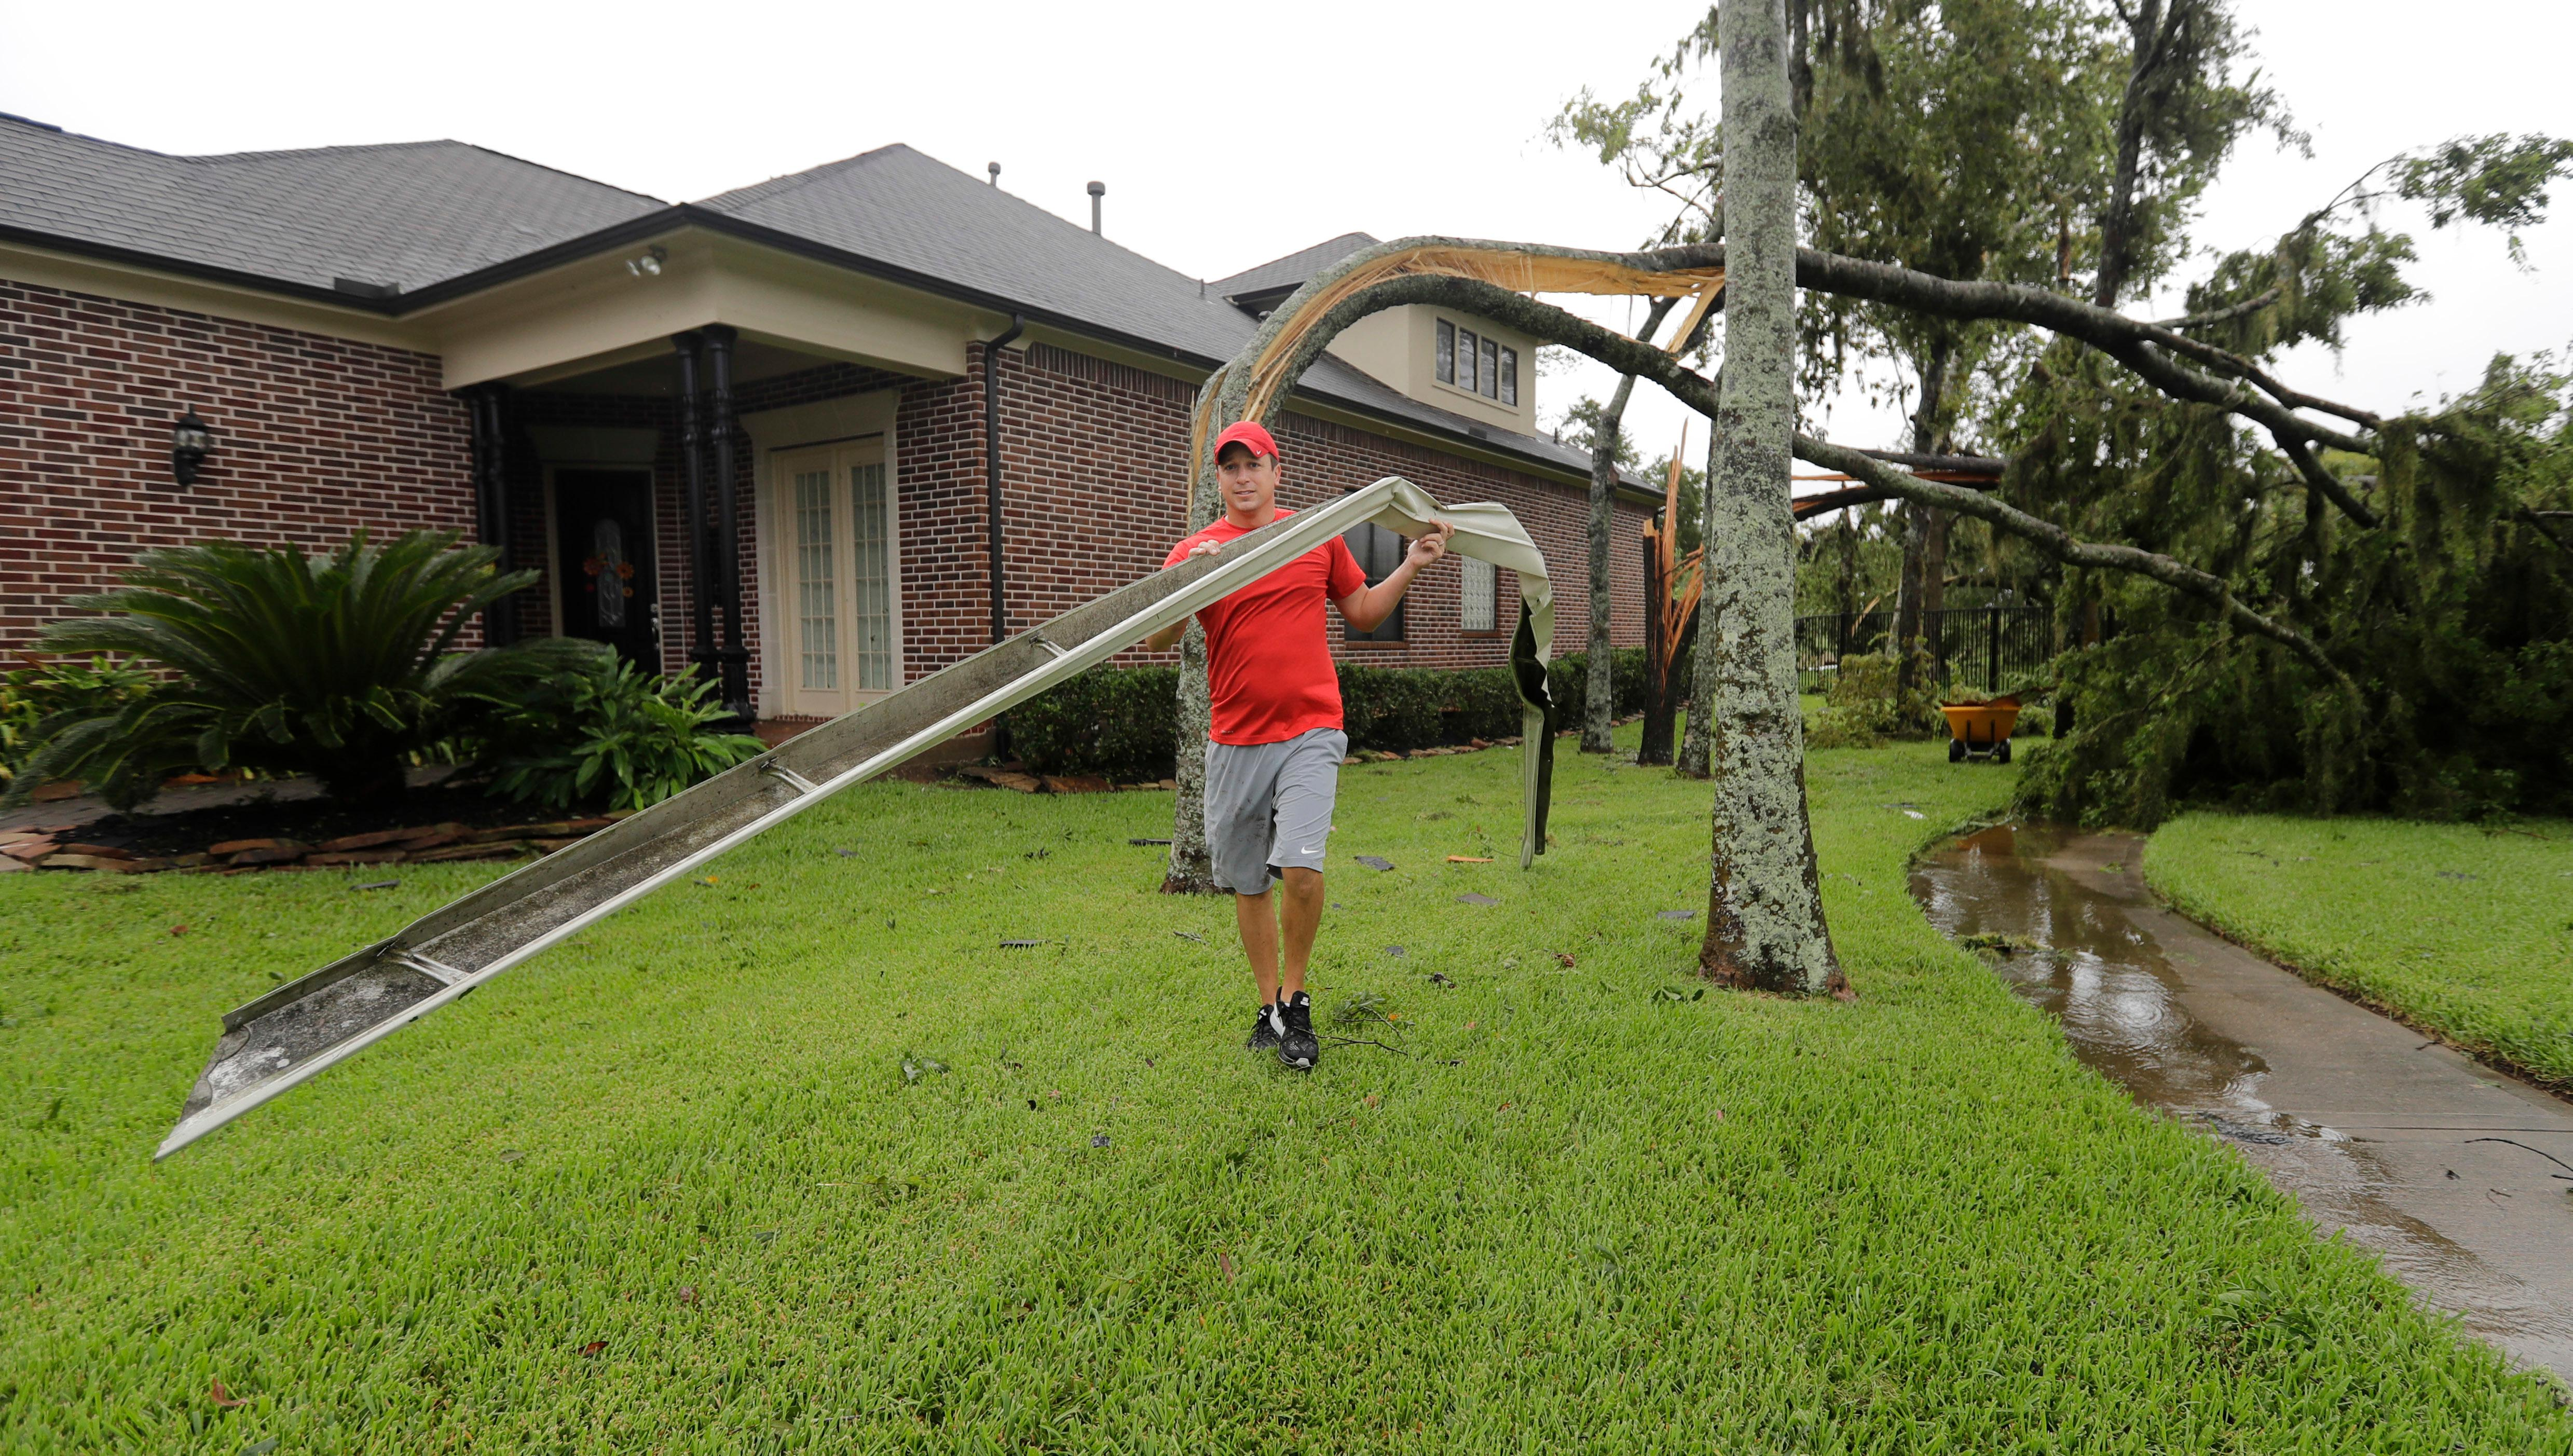 A resident, who wished not to be identified, carries a torn gutter while cleaning up after Hurricane Harvey Saturday, Aug. 26, 2017, in Missouri City, Texas.   Harvey rolled over the Texas Gulf Coast on Saturday, smashing homes and businesses and lashing the shore with wind and rain so intense that drivers were forced off the road because they could not see in front of them. (AP Photo/David J. Phillip)